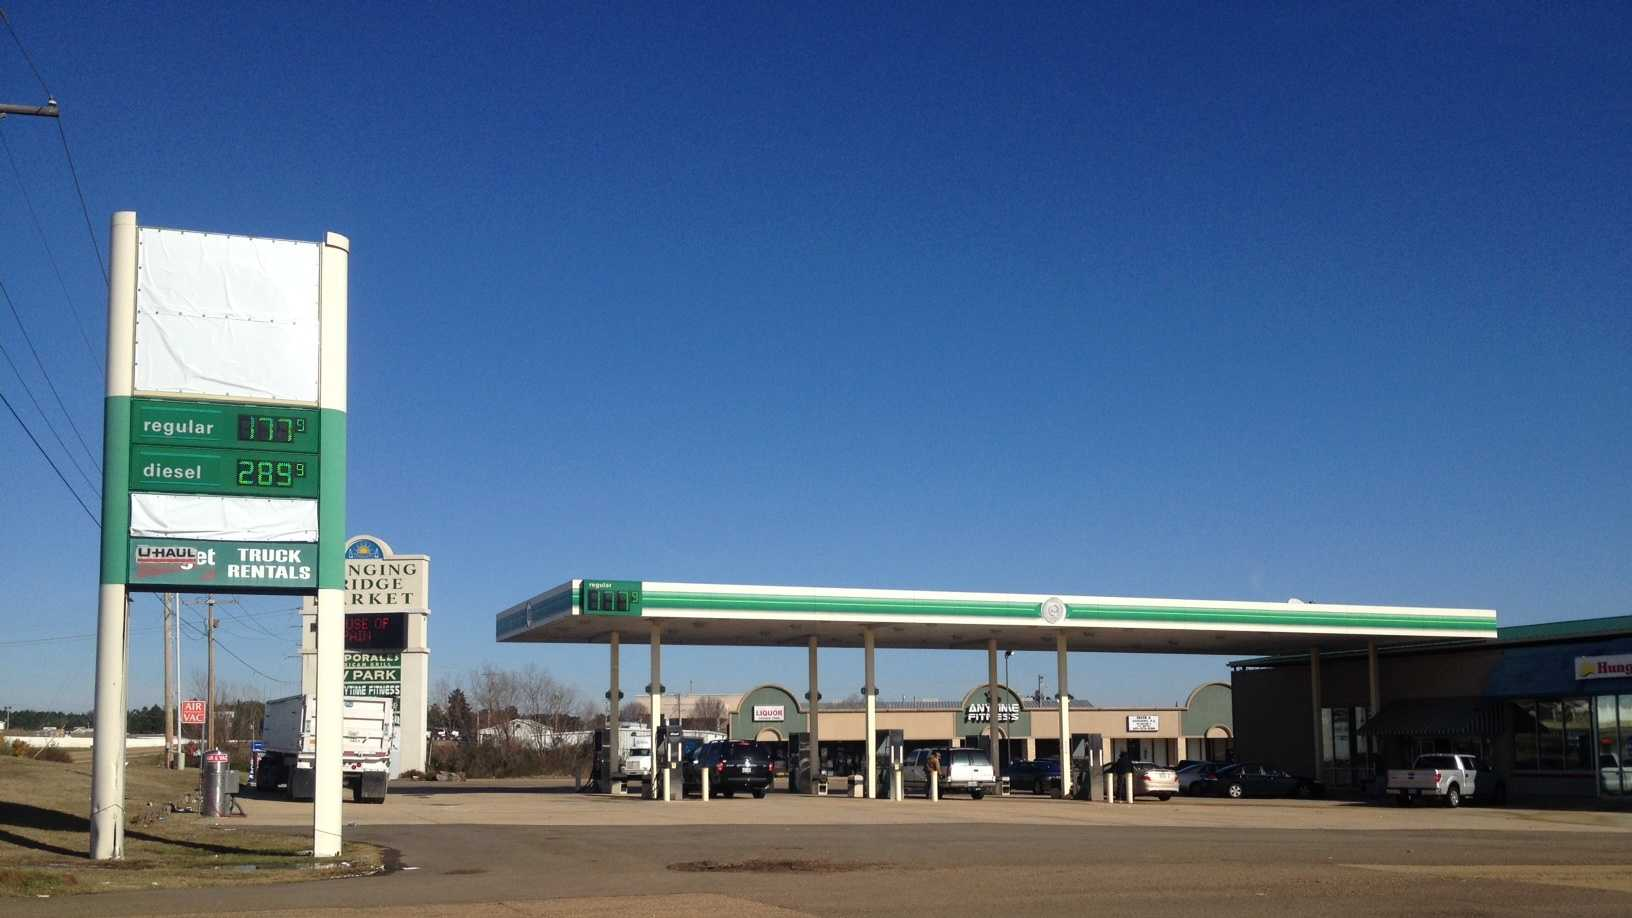 A gas station in Byram was selling gas at $1.77 a gallon on Monday.